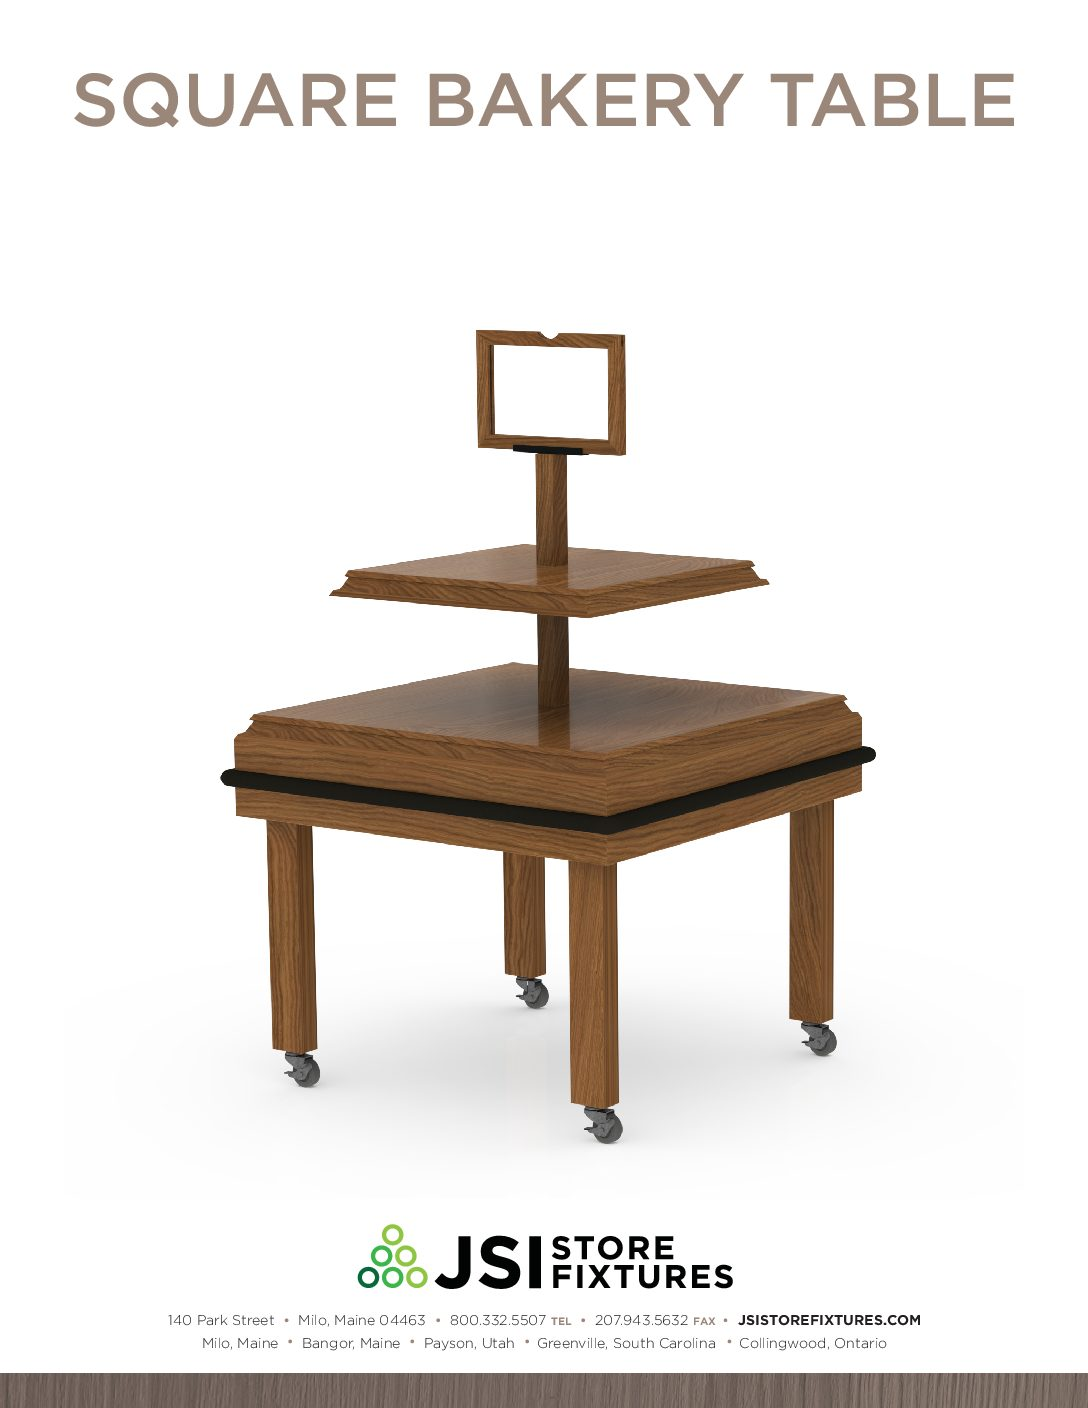 jsi store fixtures square bakery table